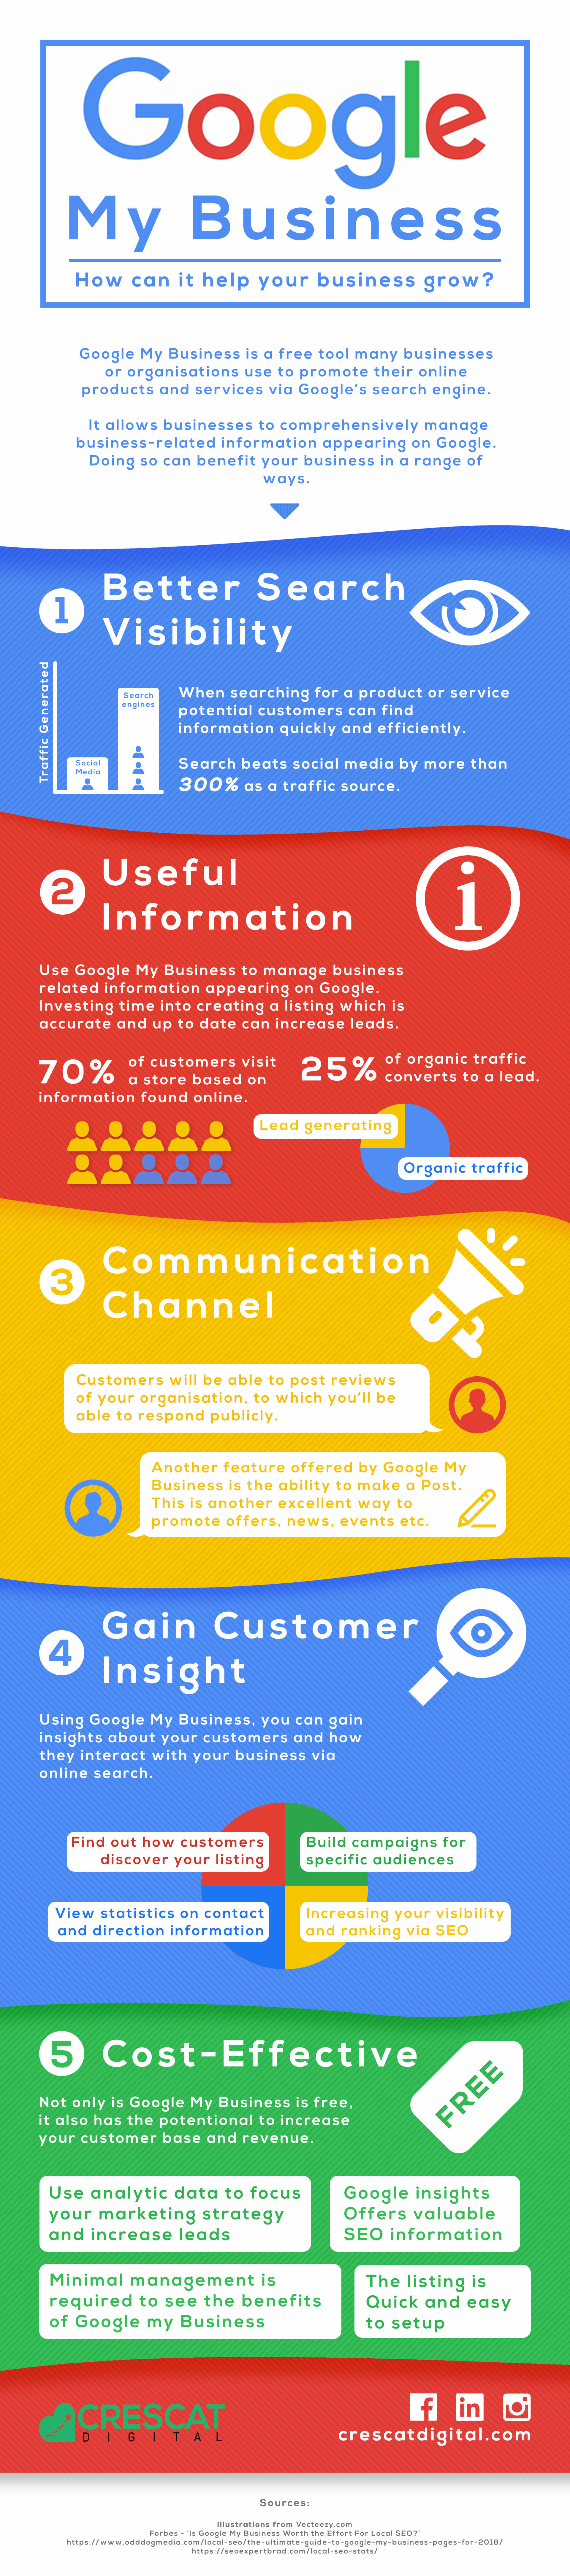 Google My Business Infographic